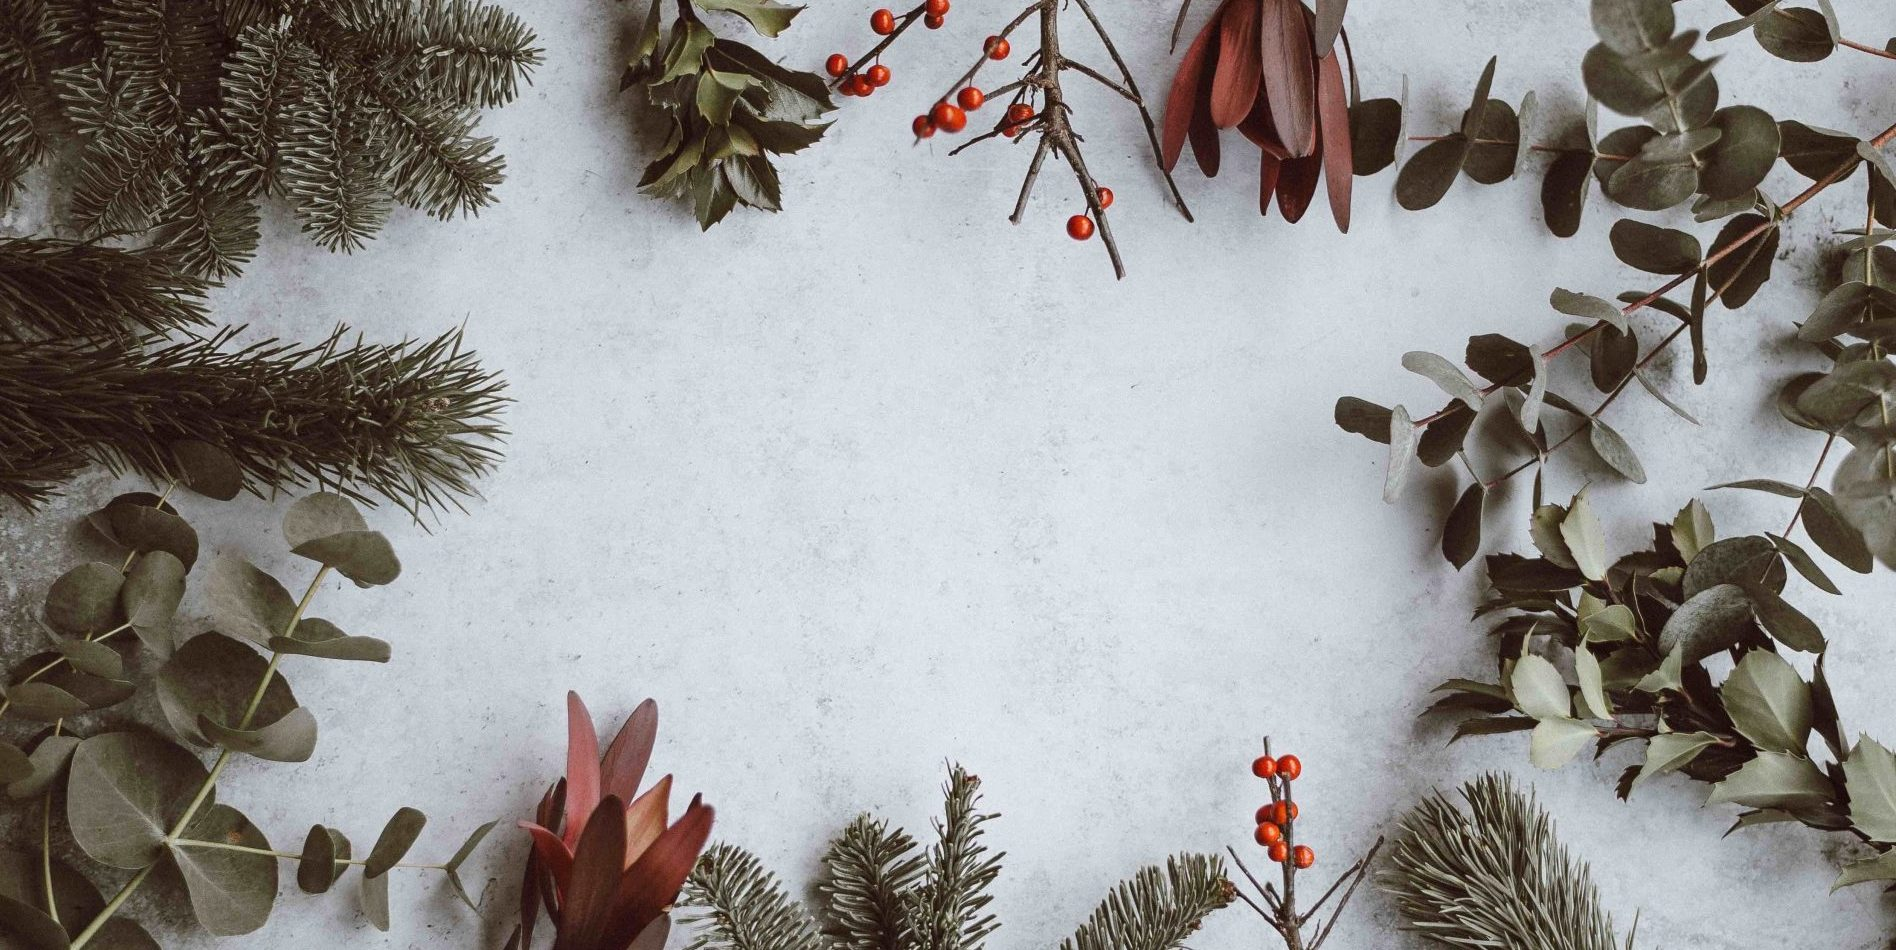 Christmas foliage on a white background